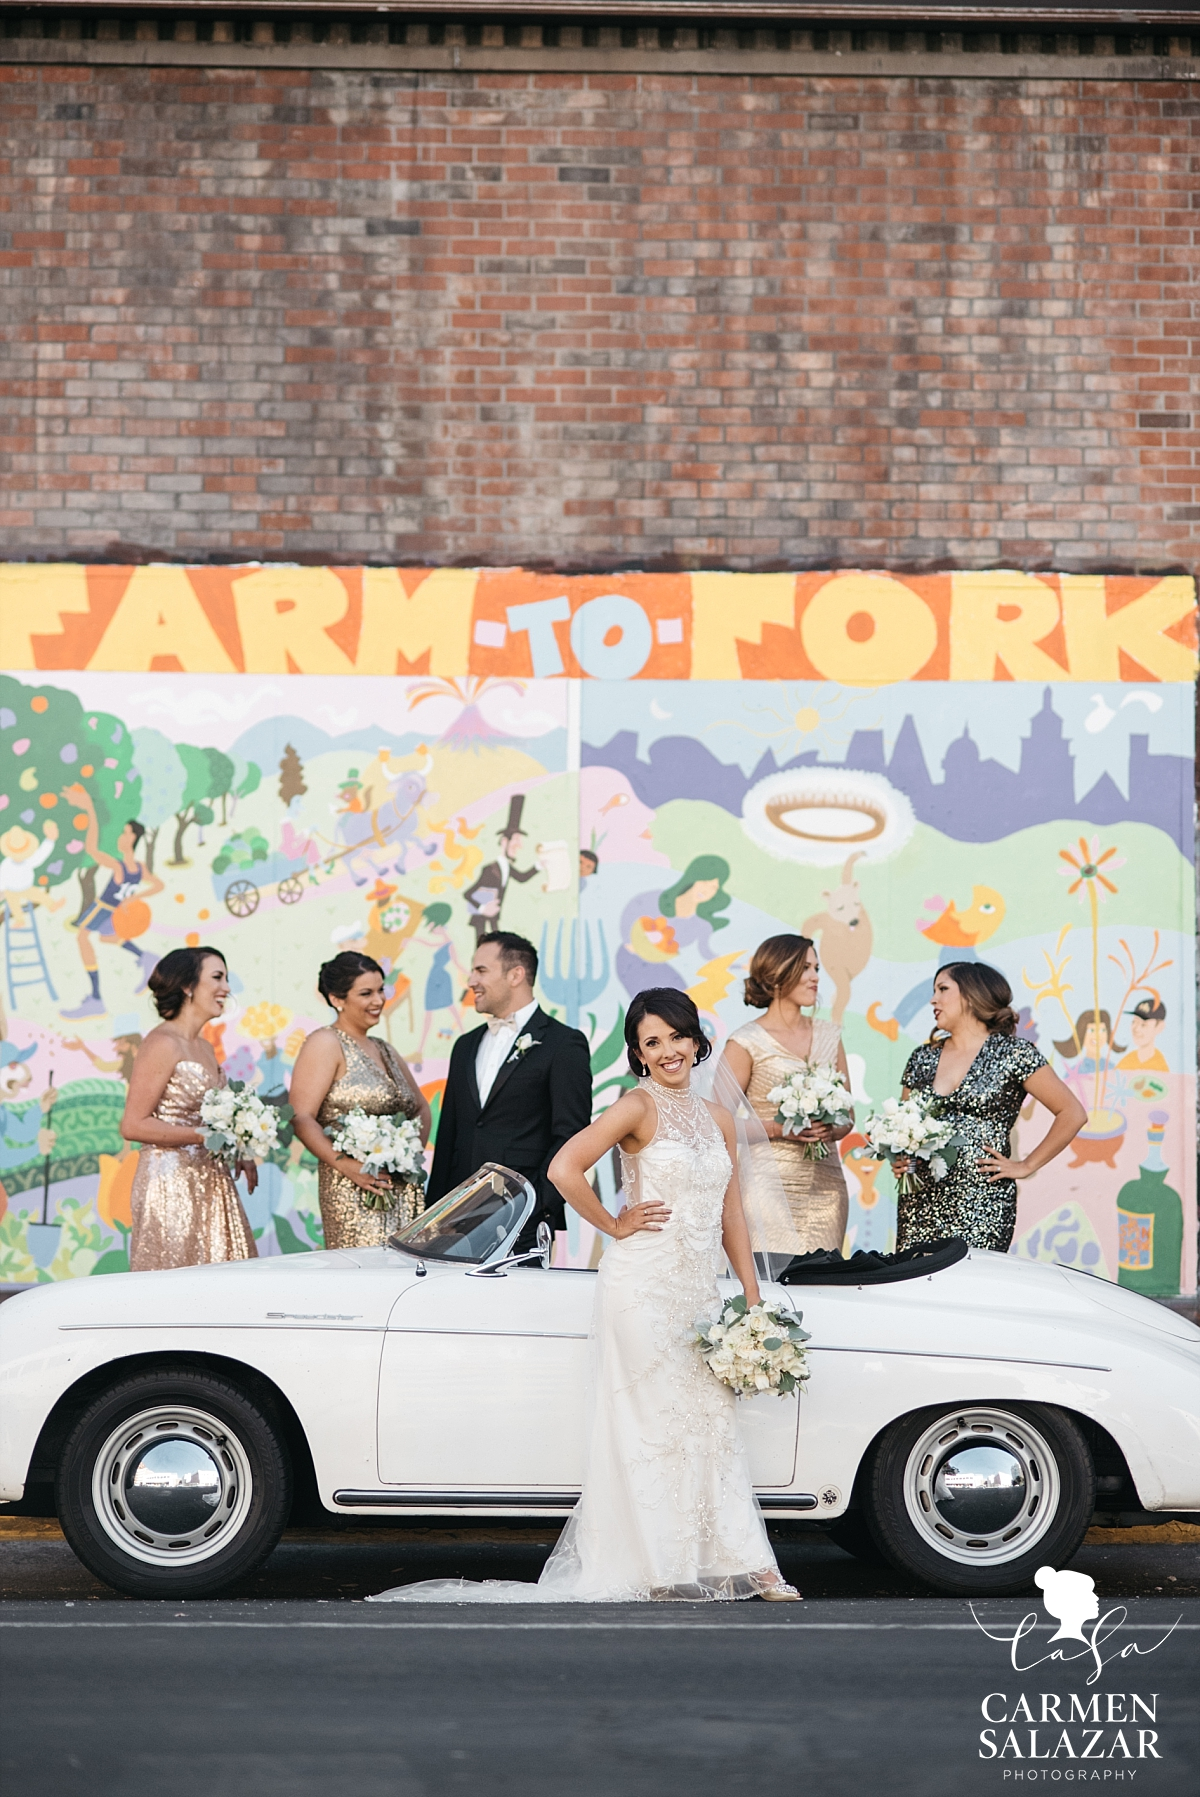 Bride and bridesmaids posing with vintage Porsche - Carmen Salazar